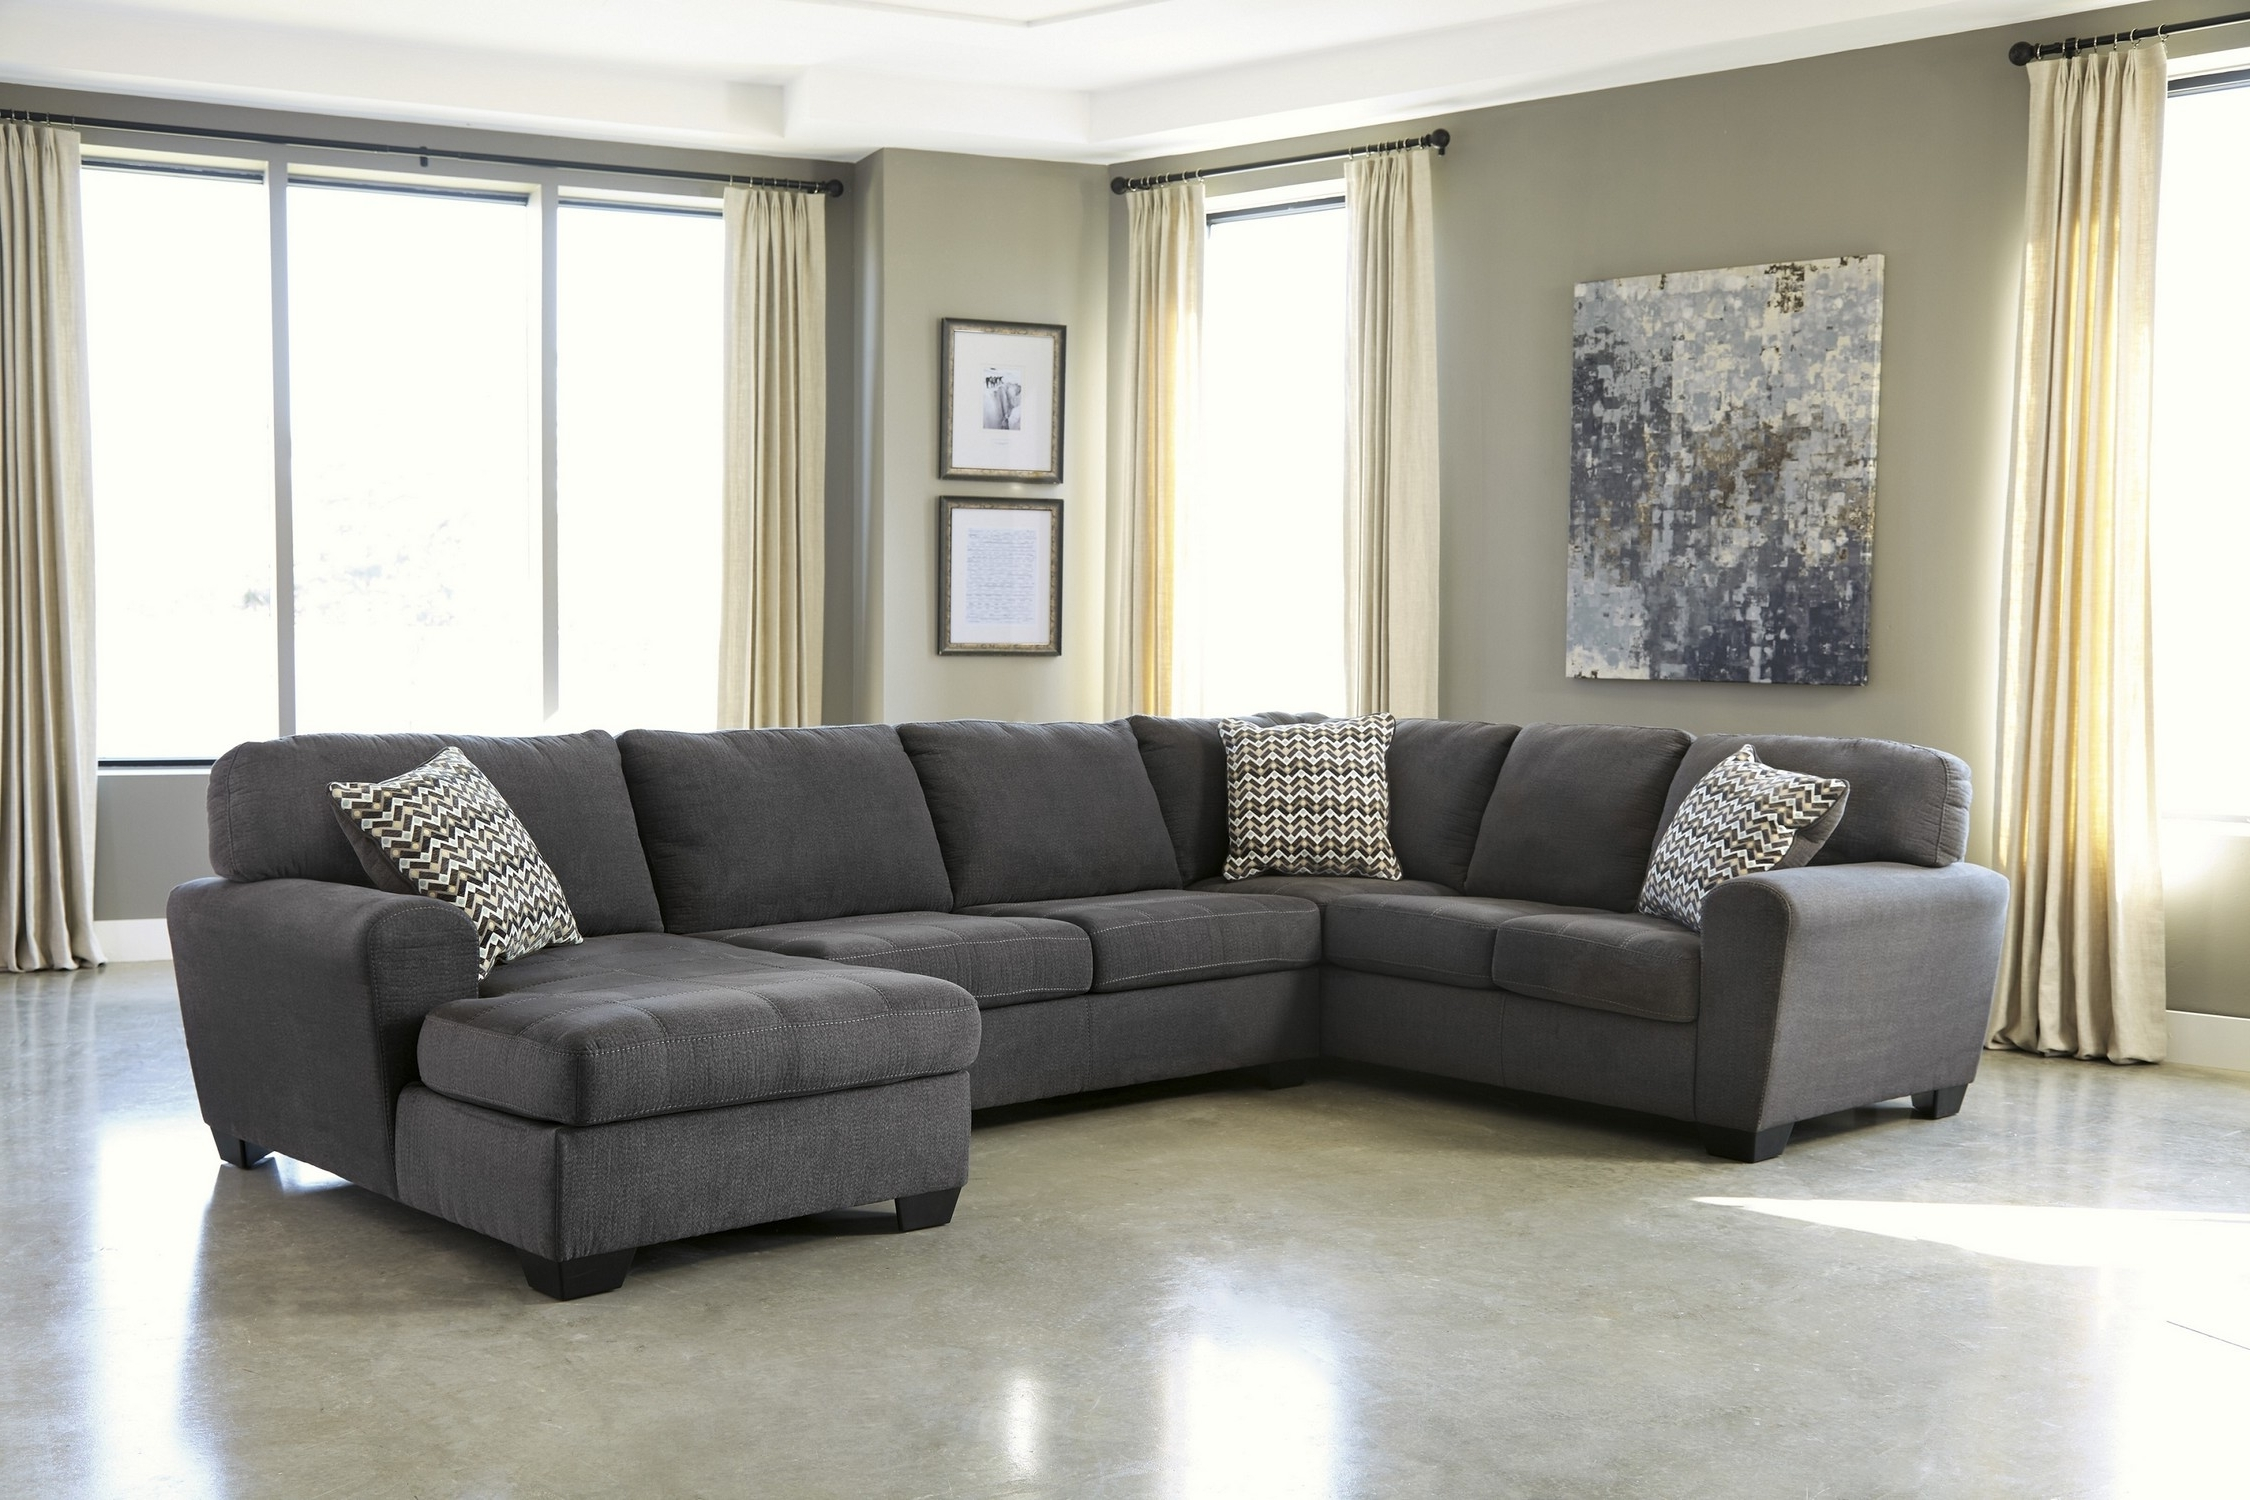 Alenya 3 Piece Sectional Quartz Fabric Reclining Sectional Grey Throughout Widely Used Gray Sectional Sofas With Chaise (View 7 of 15)